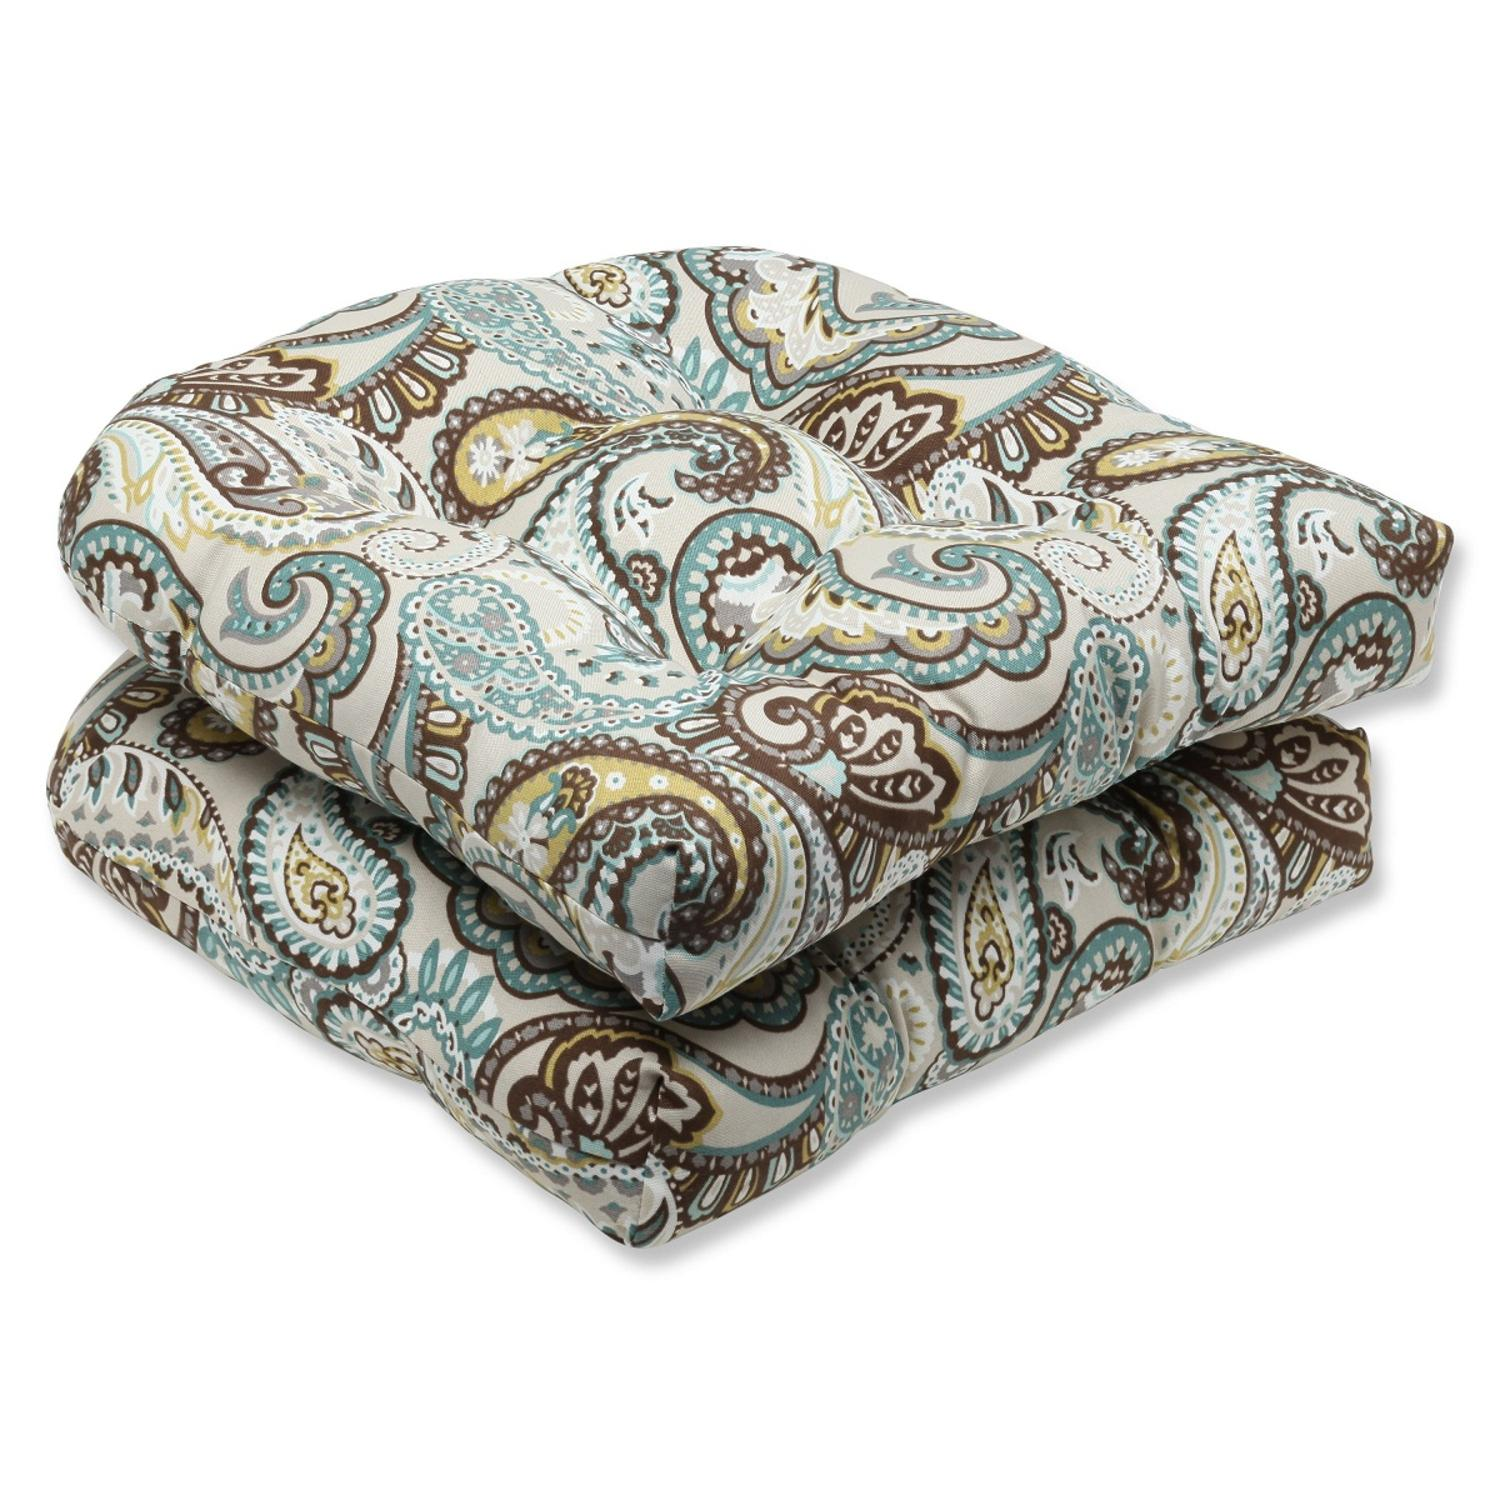 "Set of 2 Paisley Giardino Light Blue and Brown Outdoor Patio Wicker Chair Cushions 19"" by CC Outdoor Living"